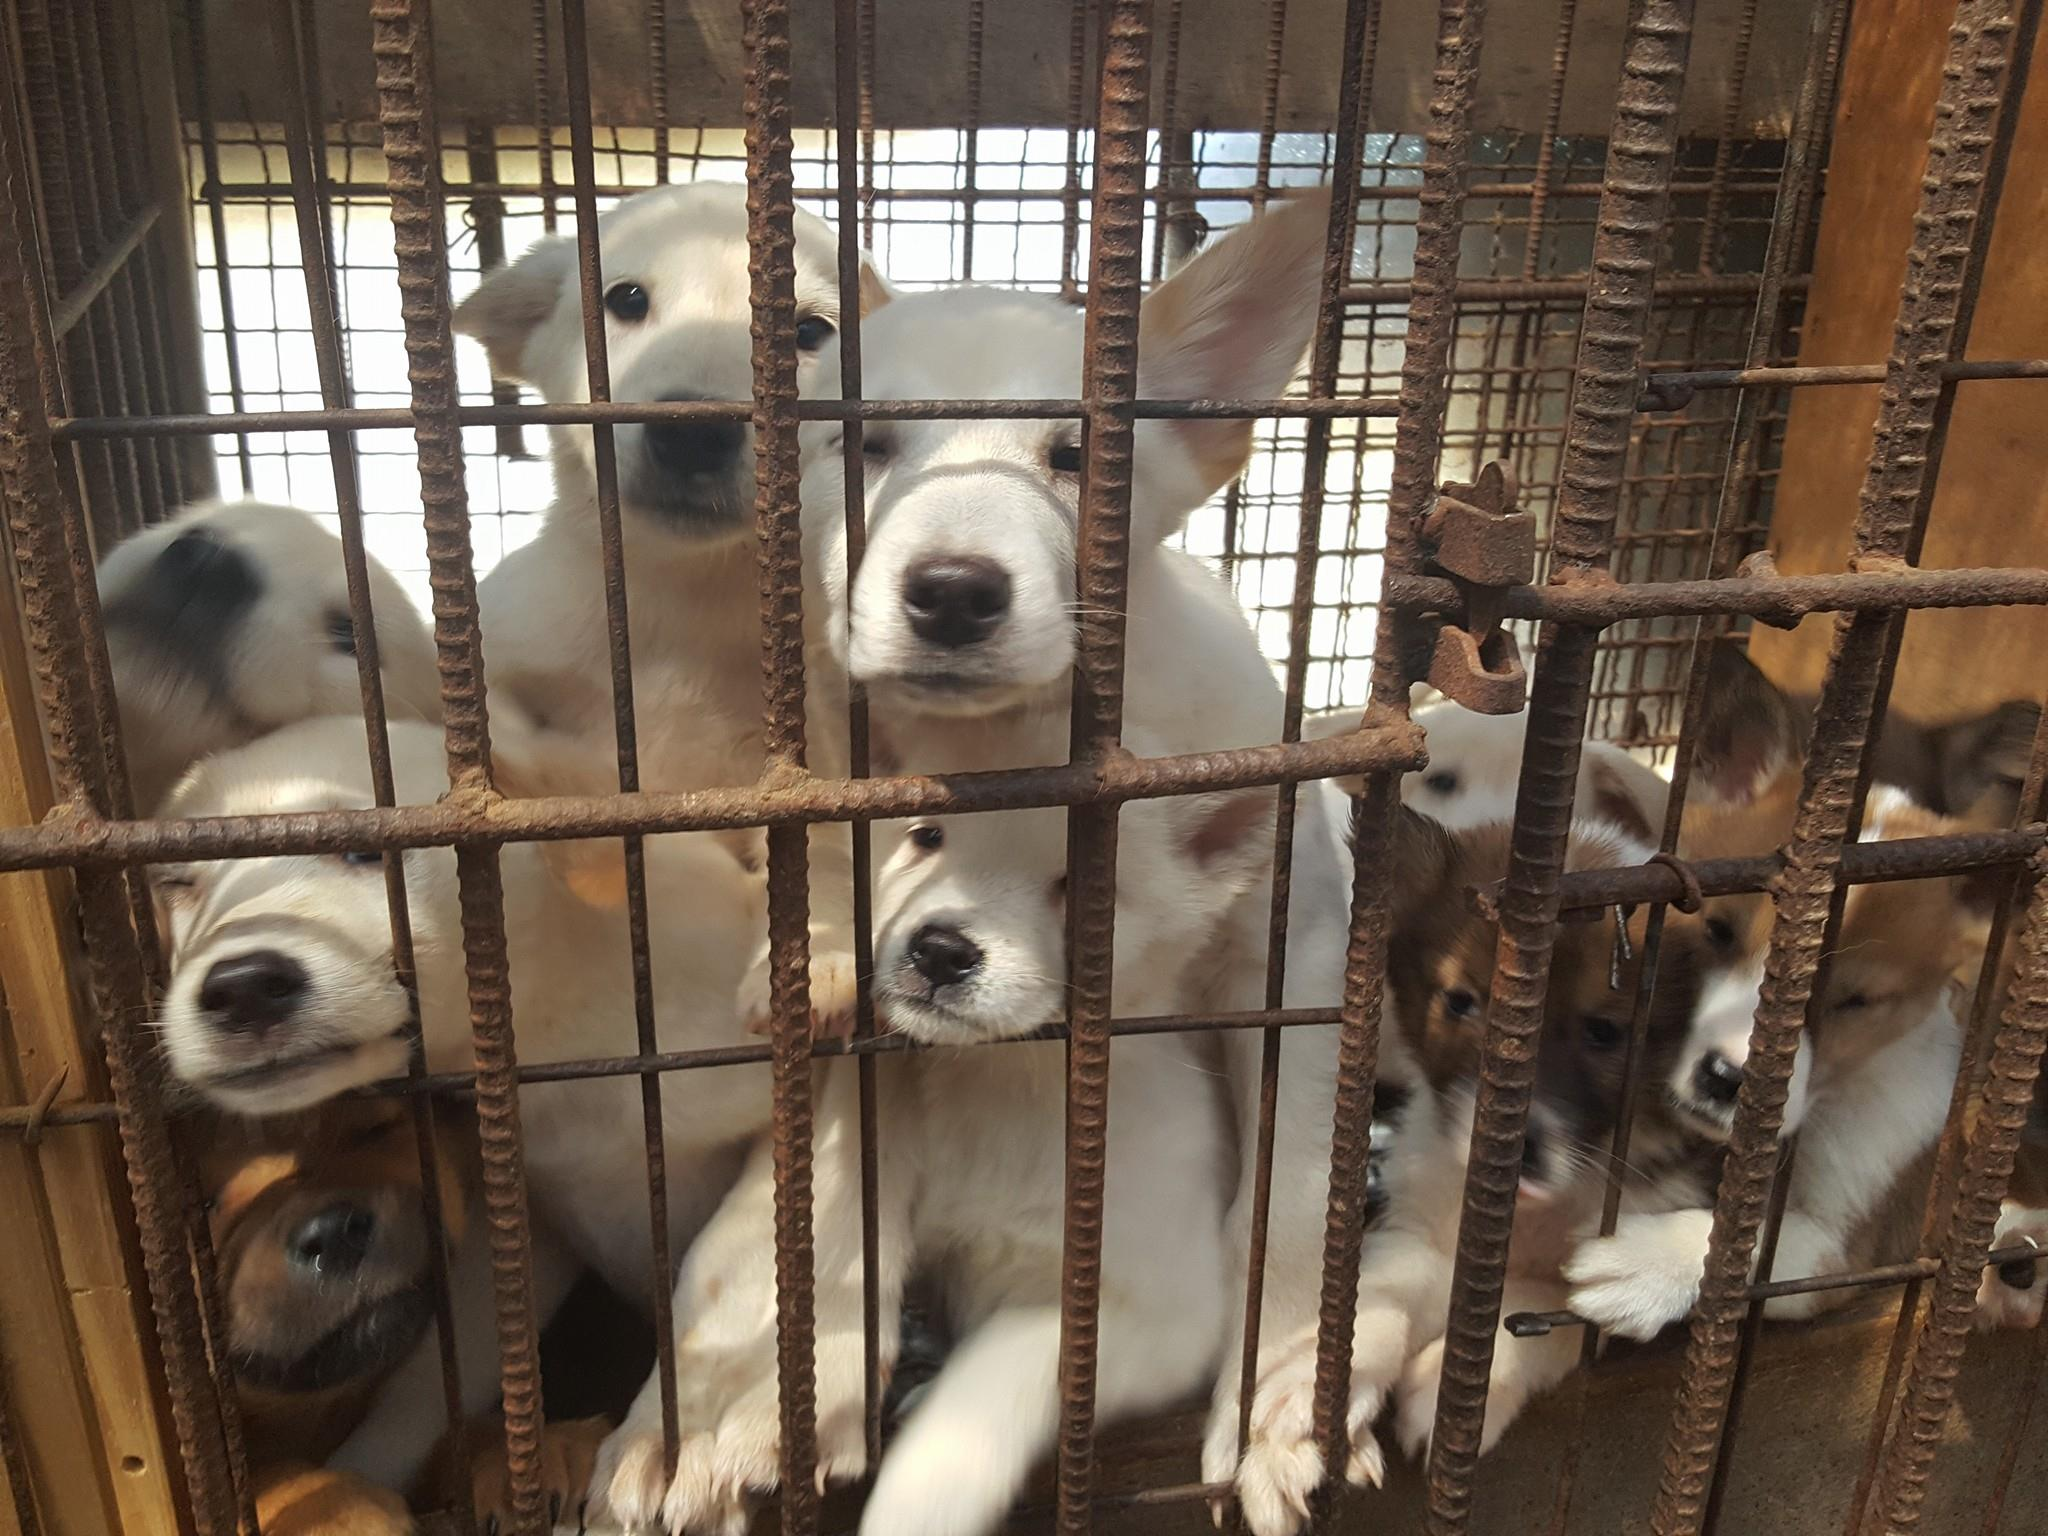 Bucheon Mayor Kim is visiting Sister City Bakersfield – time to urge the ending of the dog meat cruelty